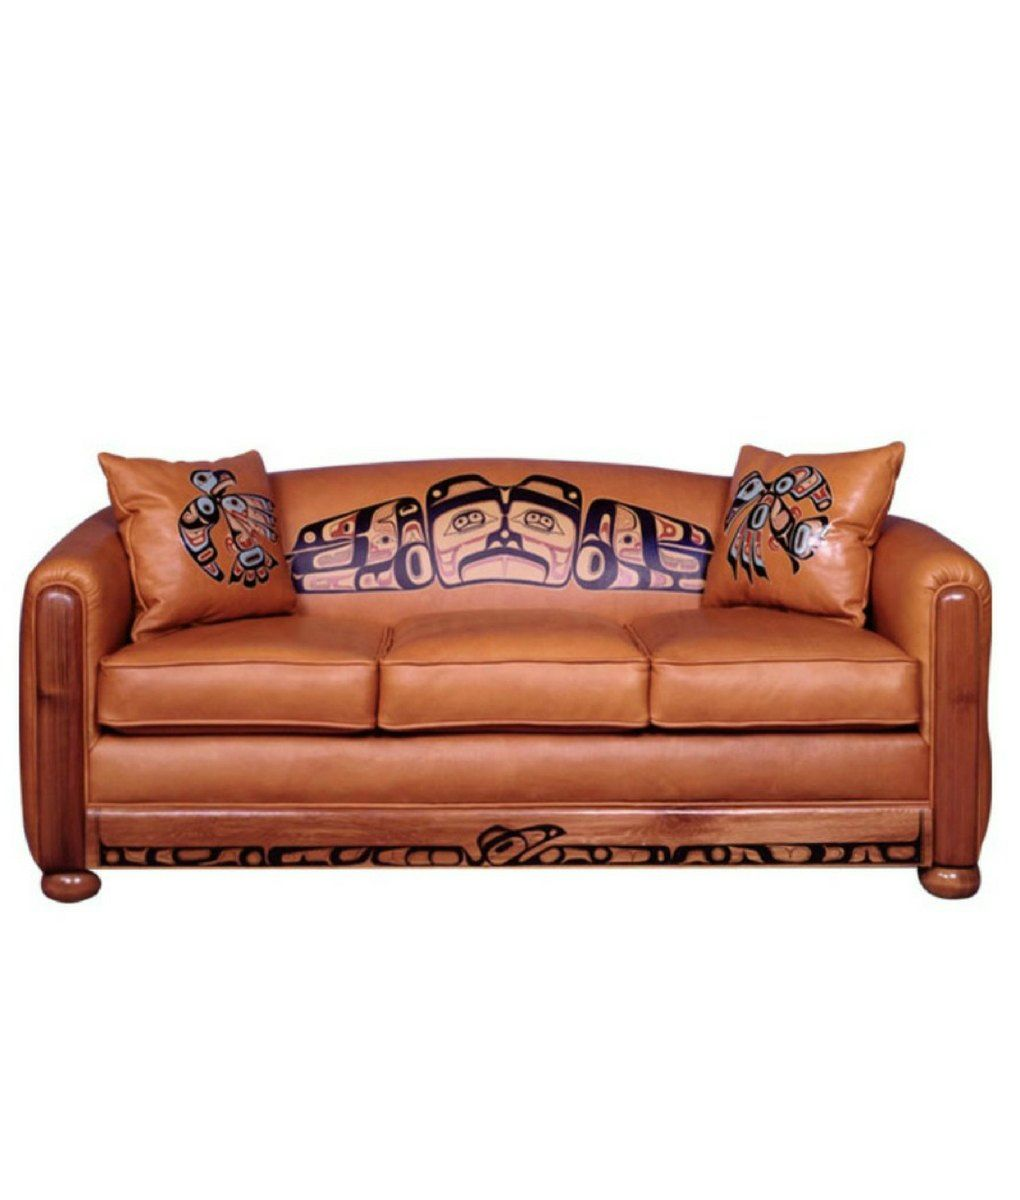 Leather Sofa Has Native American Tribal Art Hand Painted All Across The Seat Back And Kick Plate On 2 Matching Pillows Northwest Indian